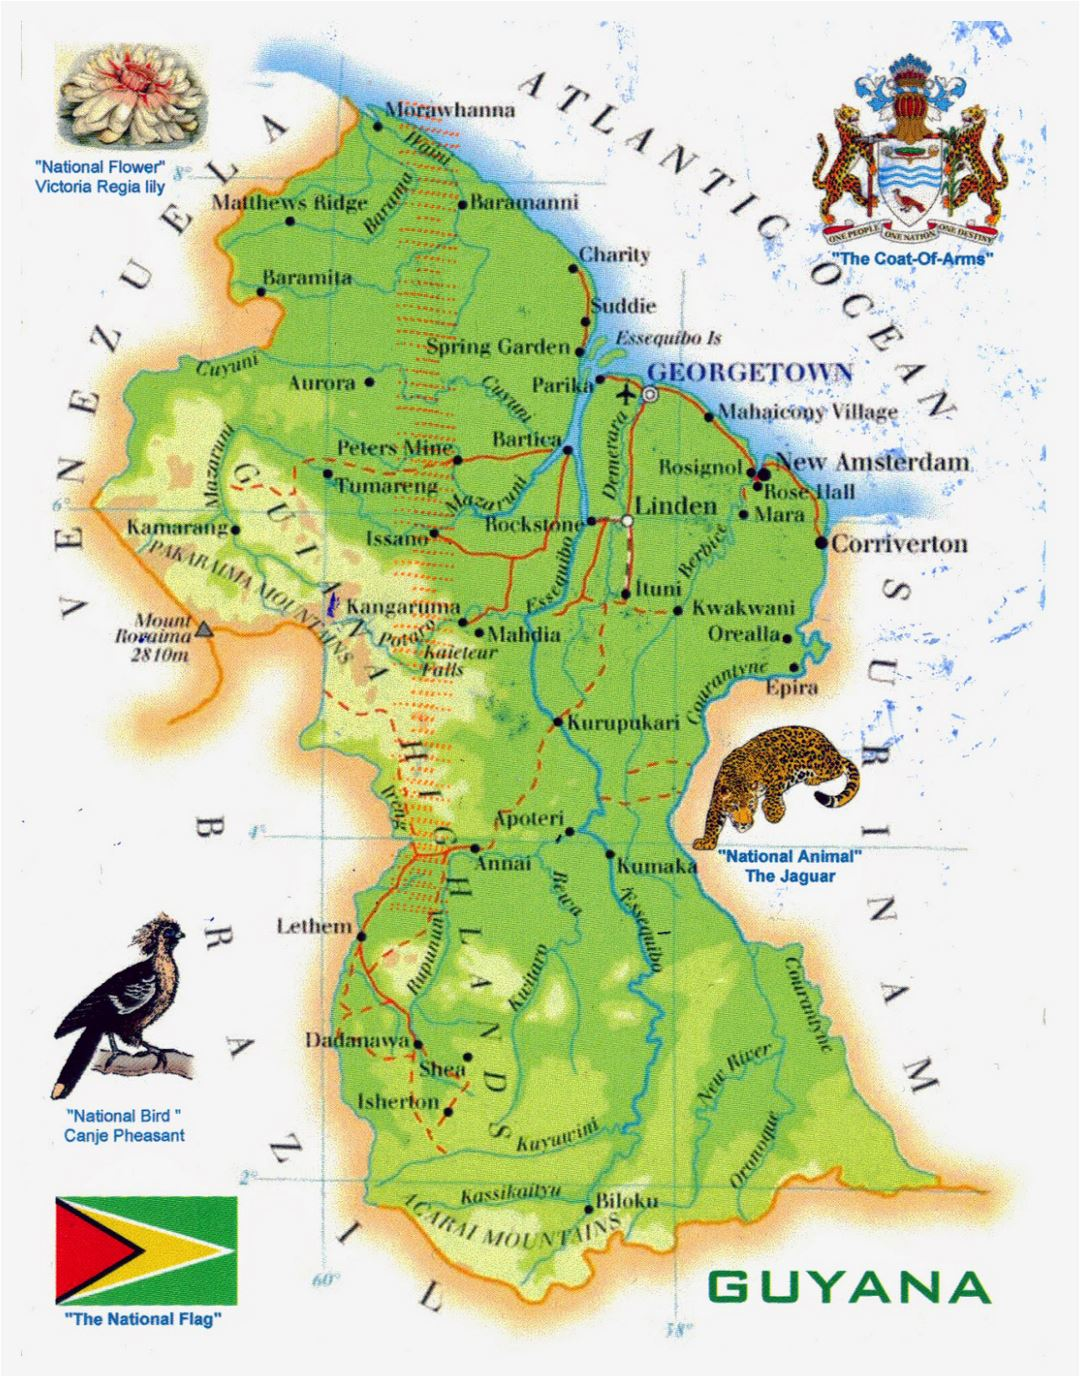 Large tourist map of Guyana